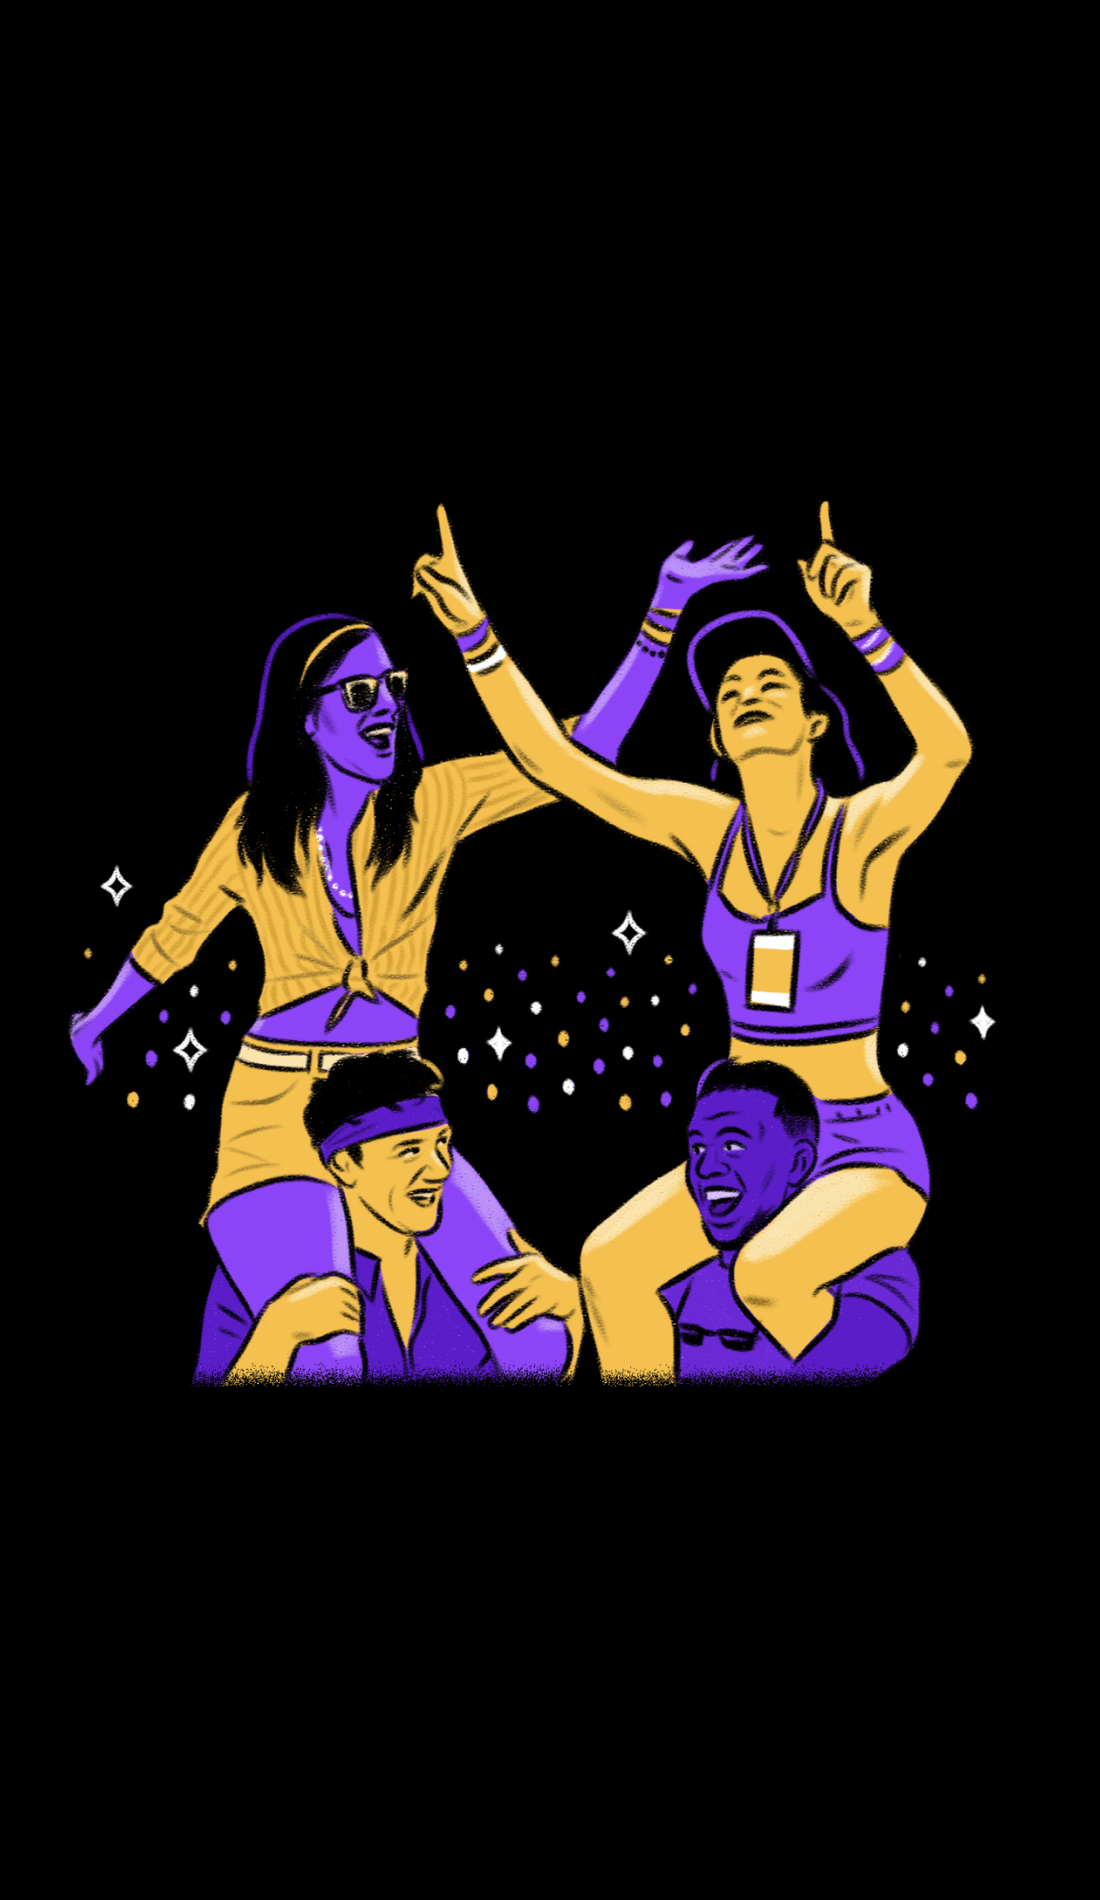 A Bumbershoot Festival live event